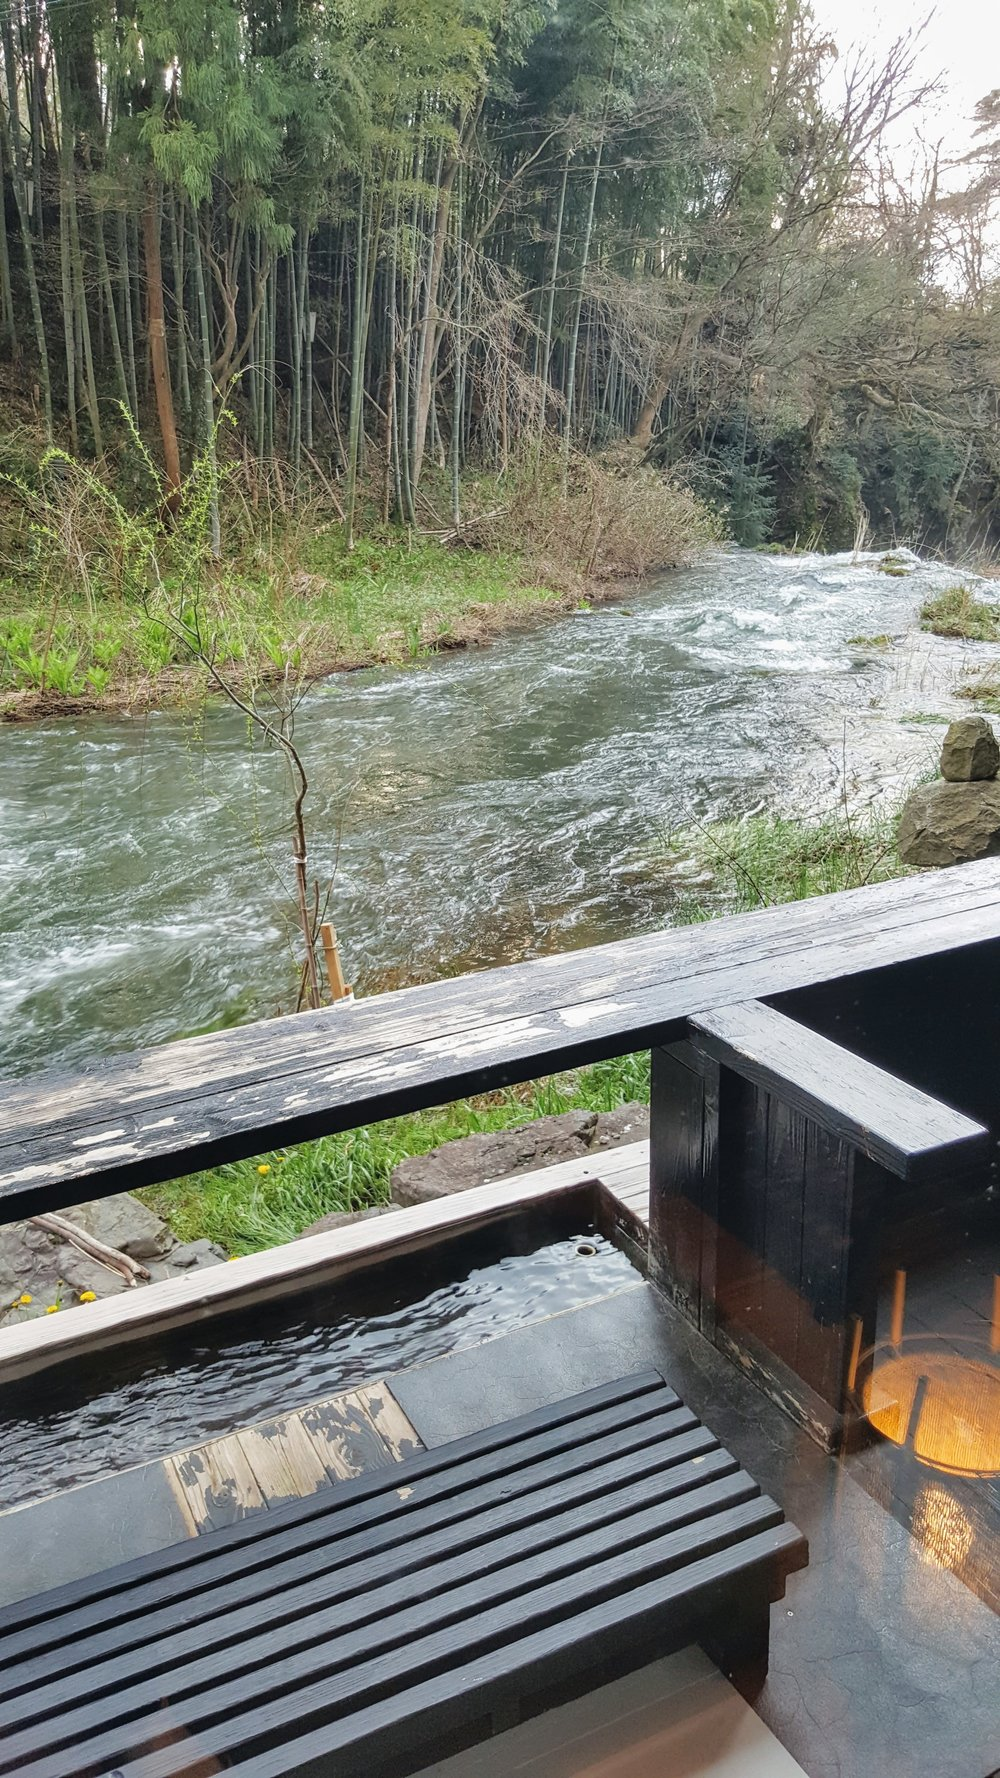 Public foot bath facing the mountain and river stream